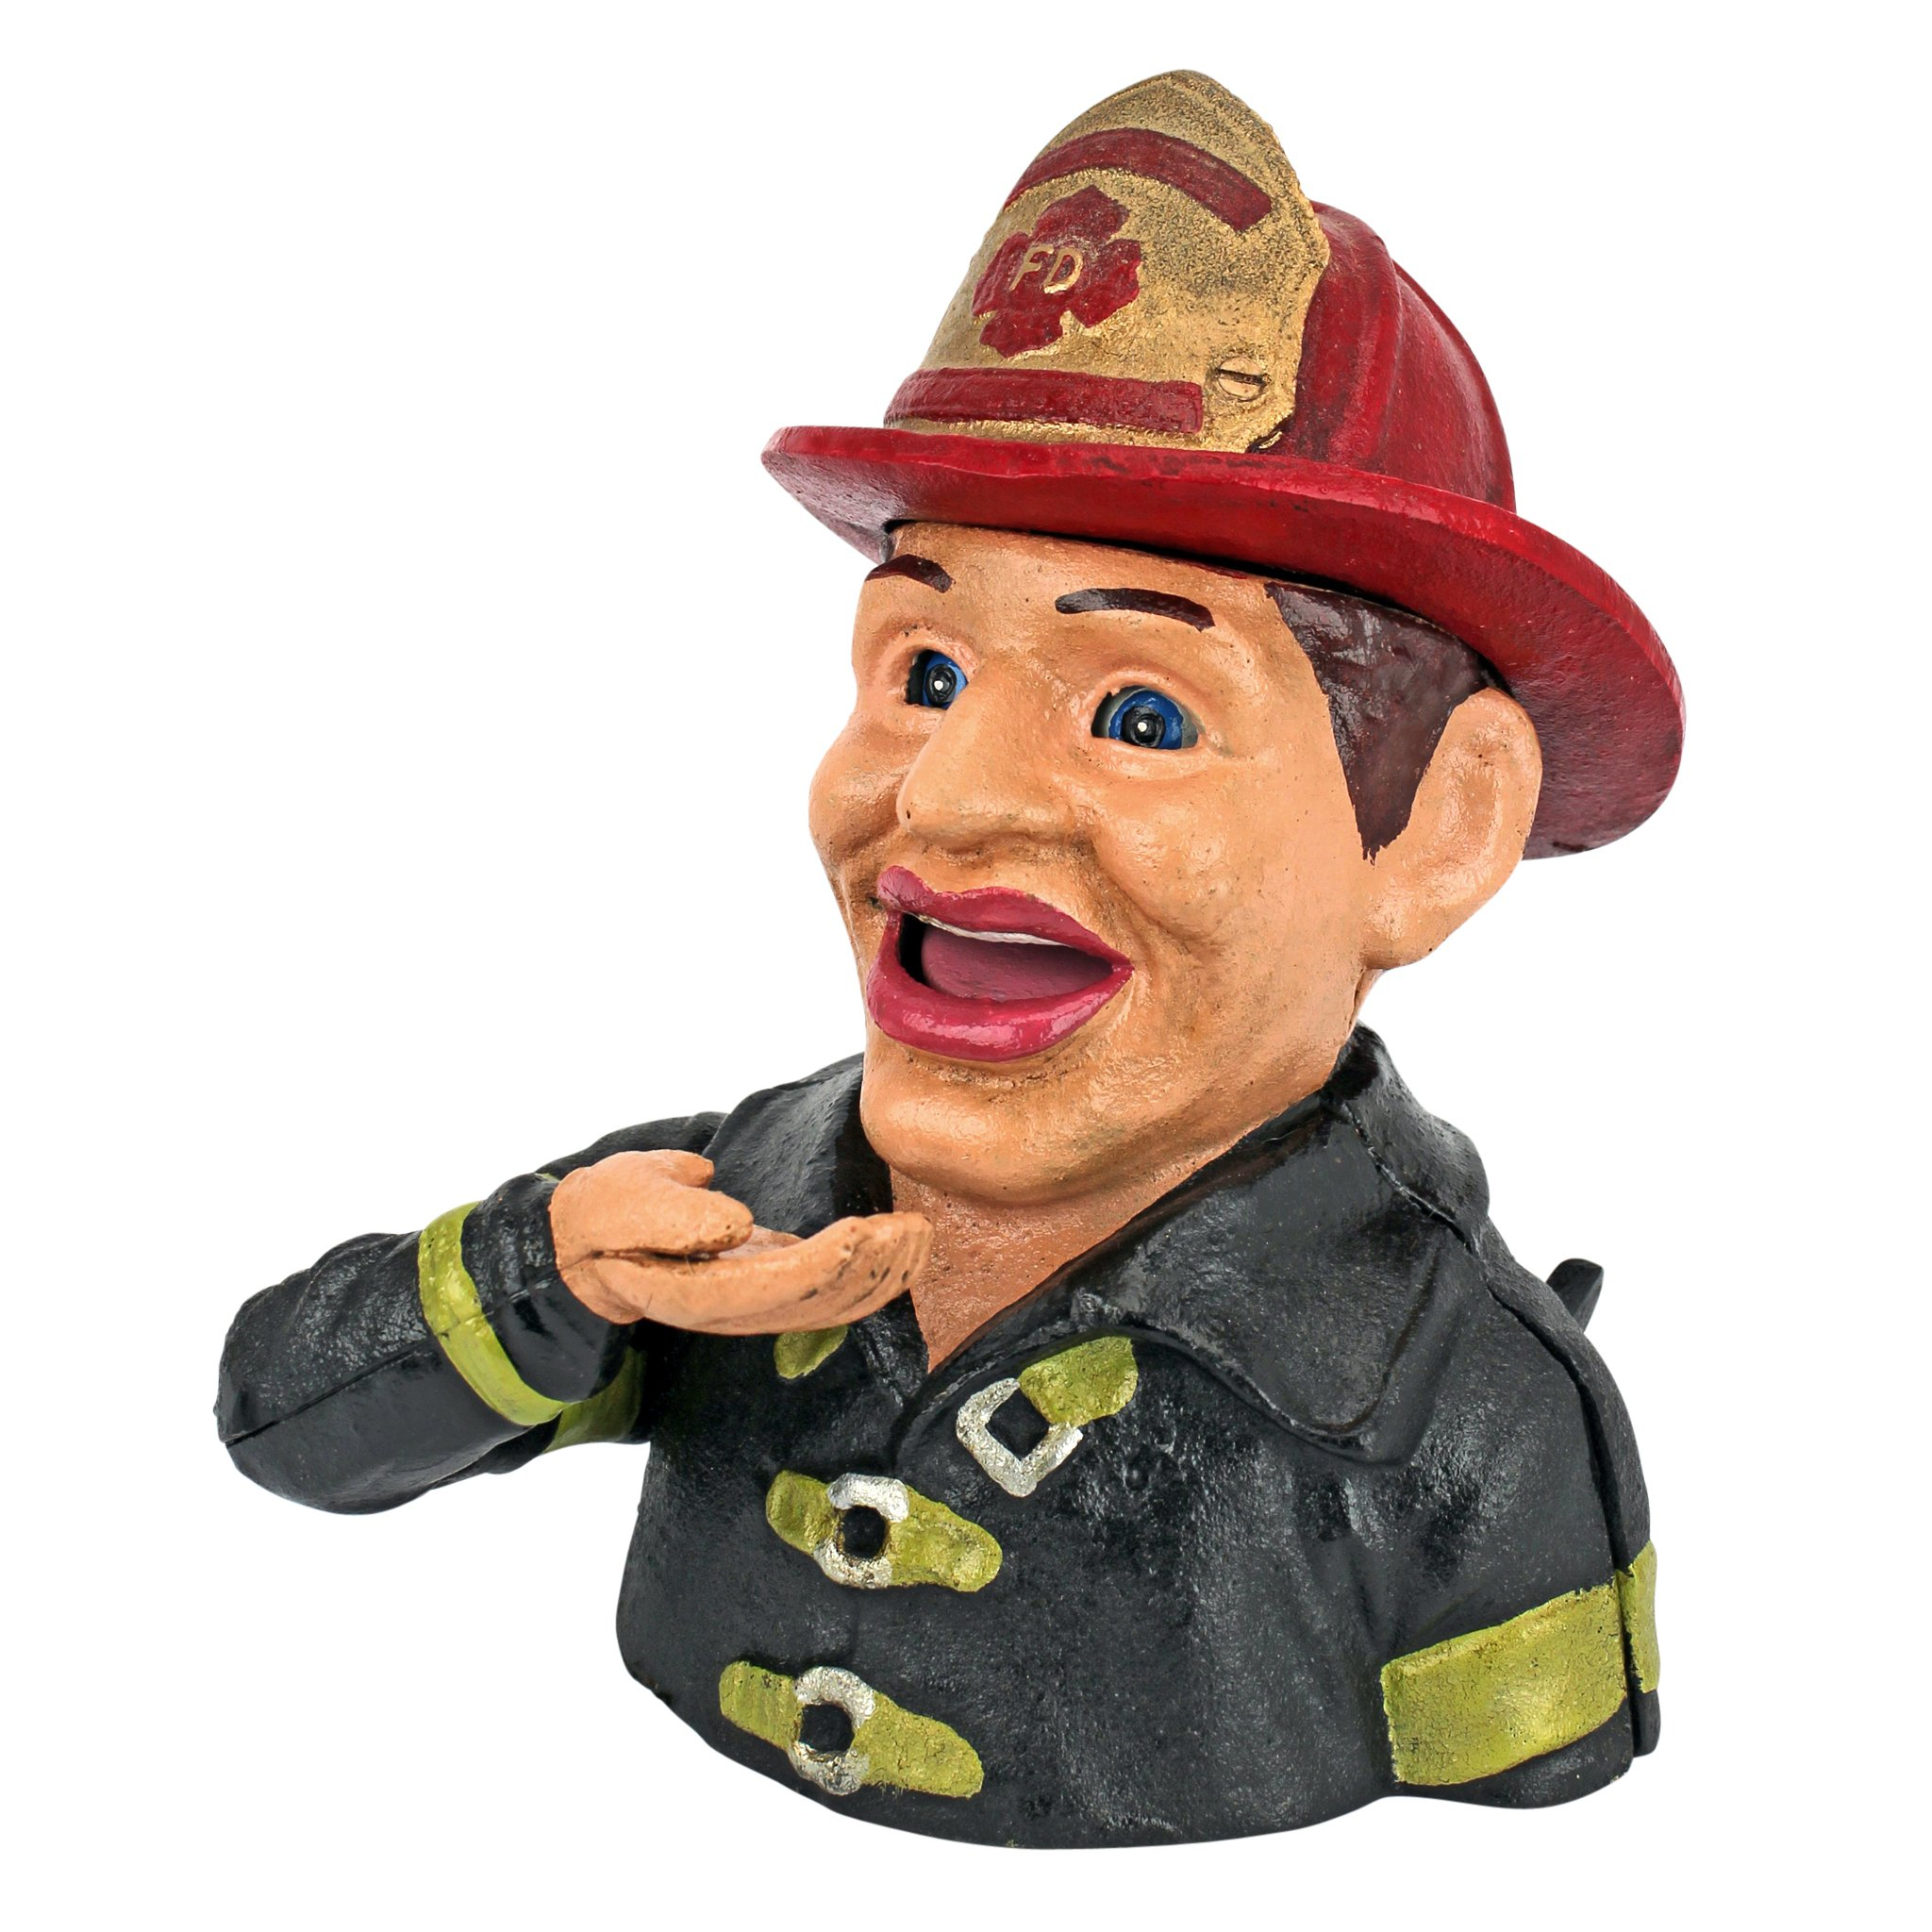 Design Toscano Fireman's Fund Die-Cast Iron Mechanical Coin Bank by Design Toscano (Image #1)